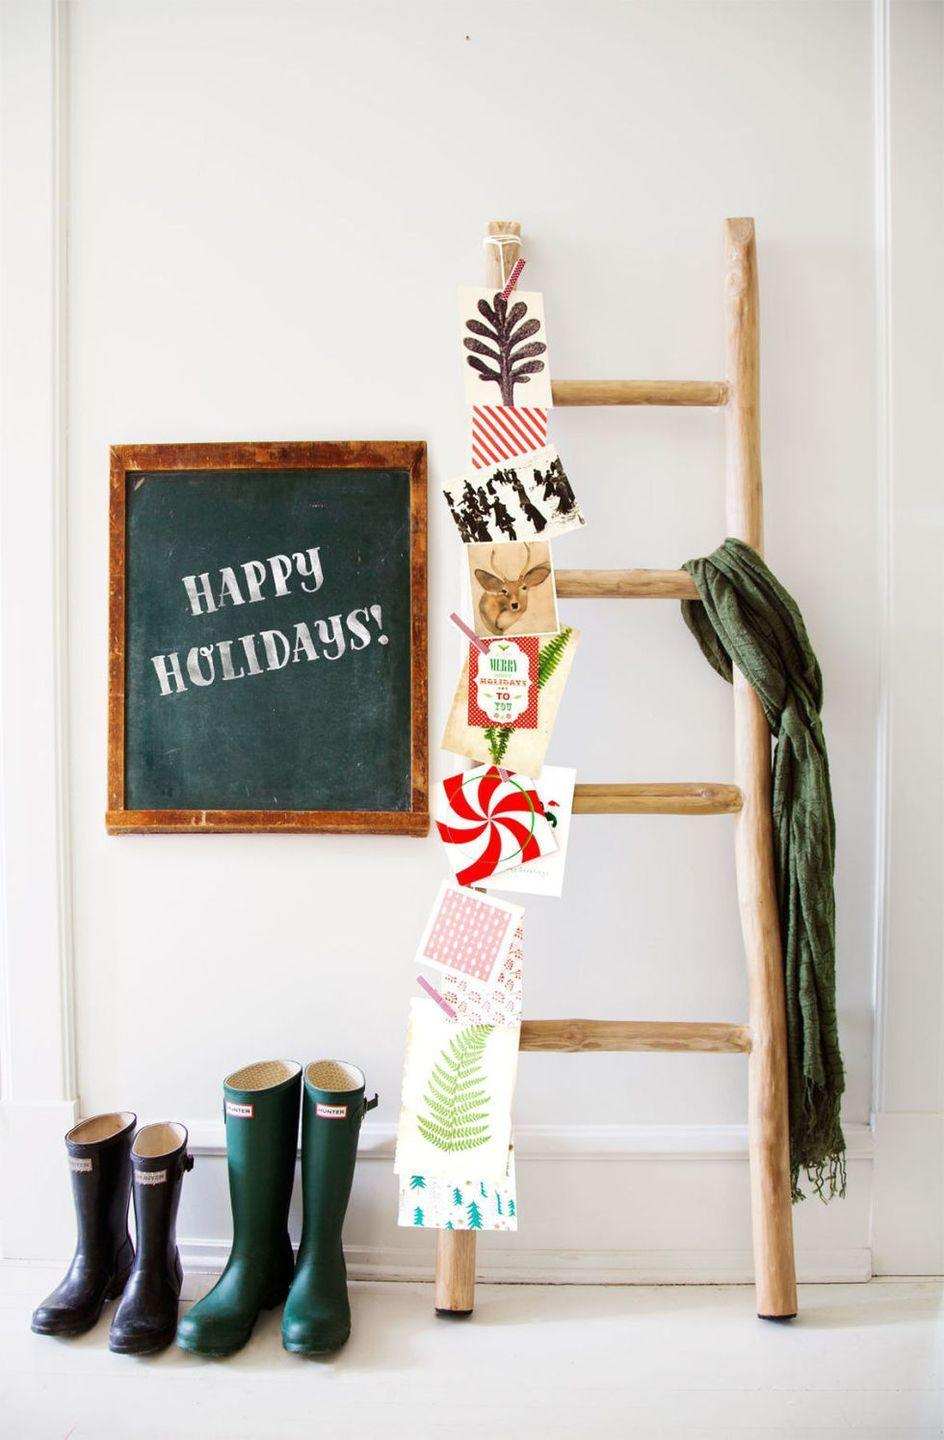 """<p>Pin holiday cards on a rustic ladder for a farmhouse-style Christmas display.</p><p>See more at <a href=""""https://www.countryliving.com/home-design/house-tours/g2780/jennaea-gearhart-white-christmas-decor/"""" rel=""""nofollow noopener"""" target=""""_blank"""" data-ylk=""""slk:Country Living"""" class=""""link rapid-noclick-resp"""">Country Living</a>.</p>"""